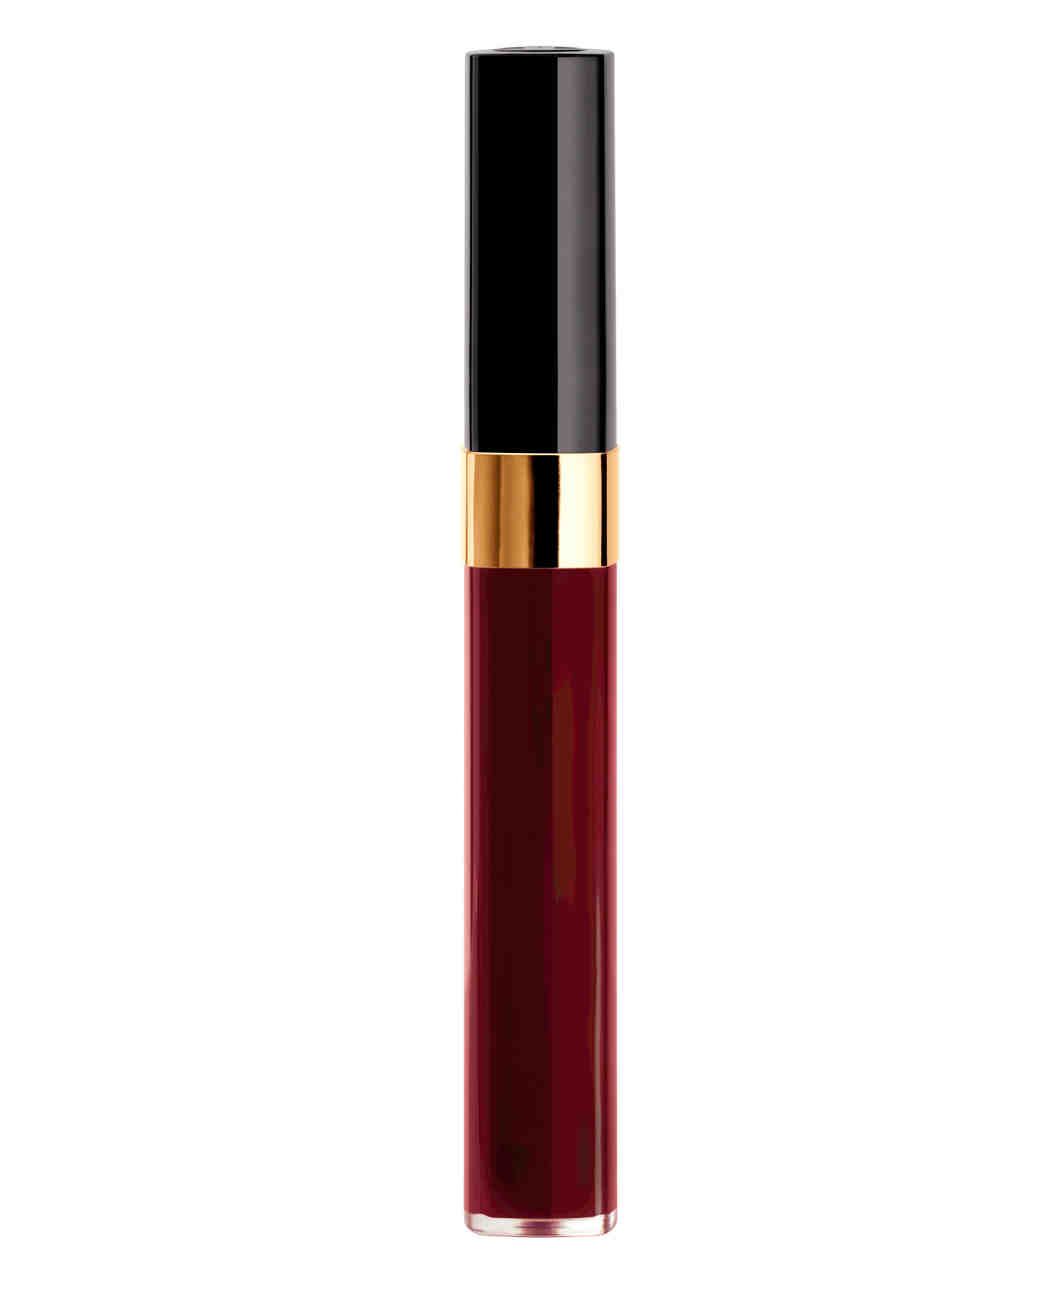 chanel-glossimer-crushed-cherry-0314.jpg